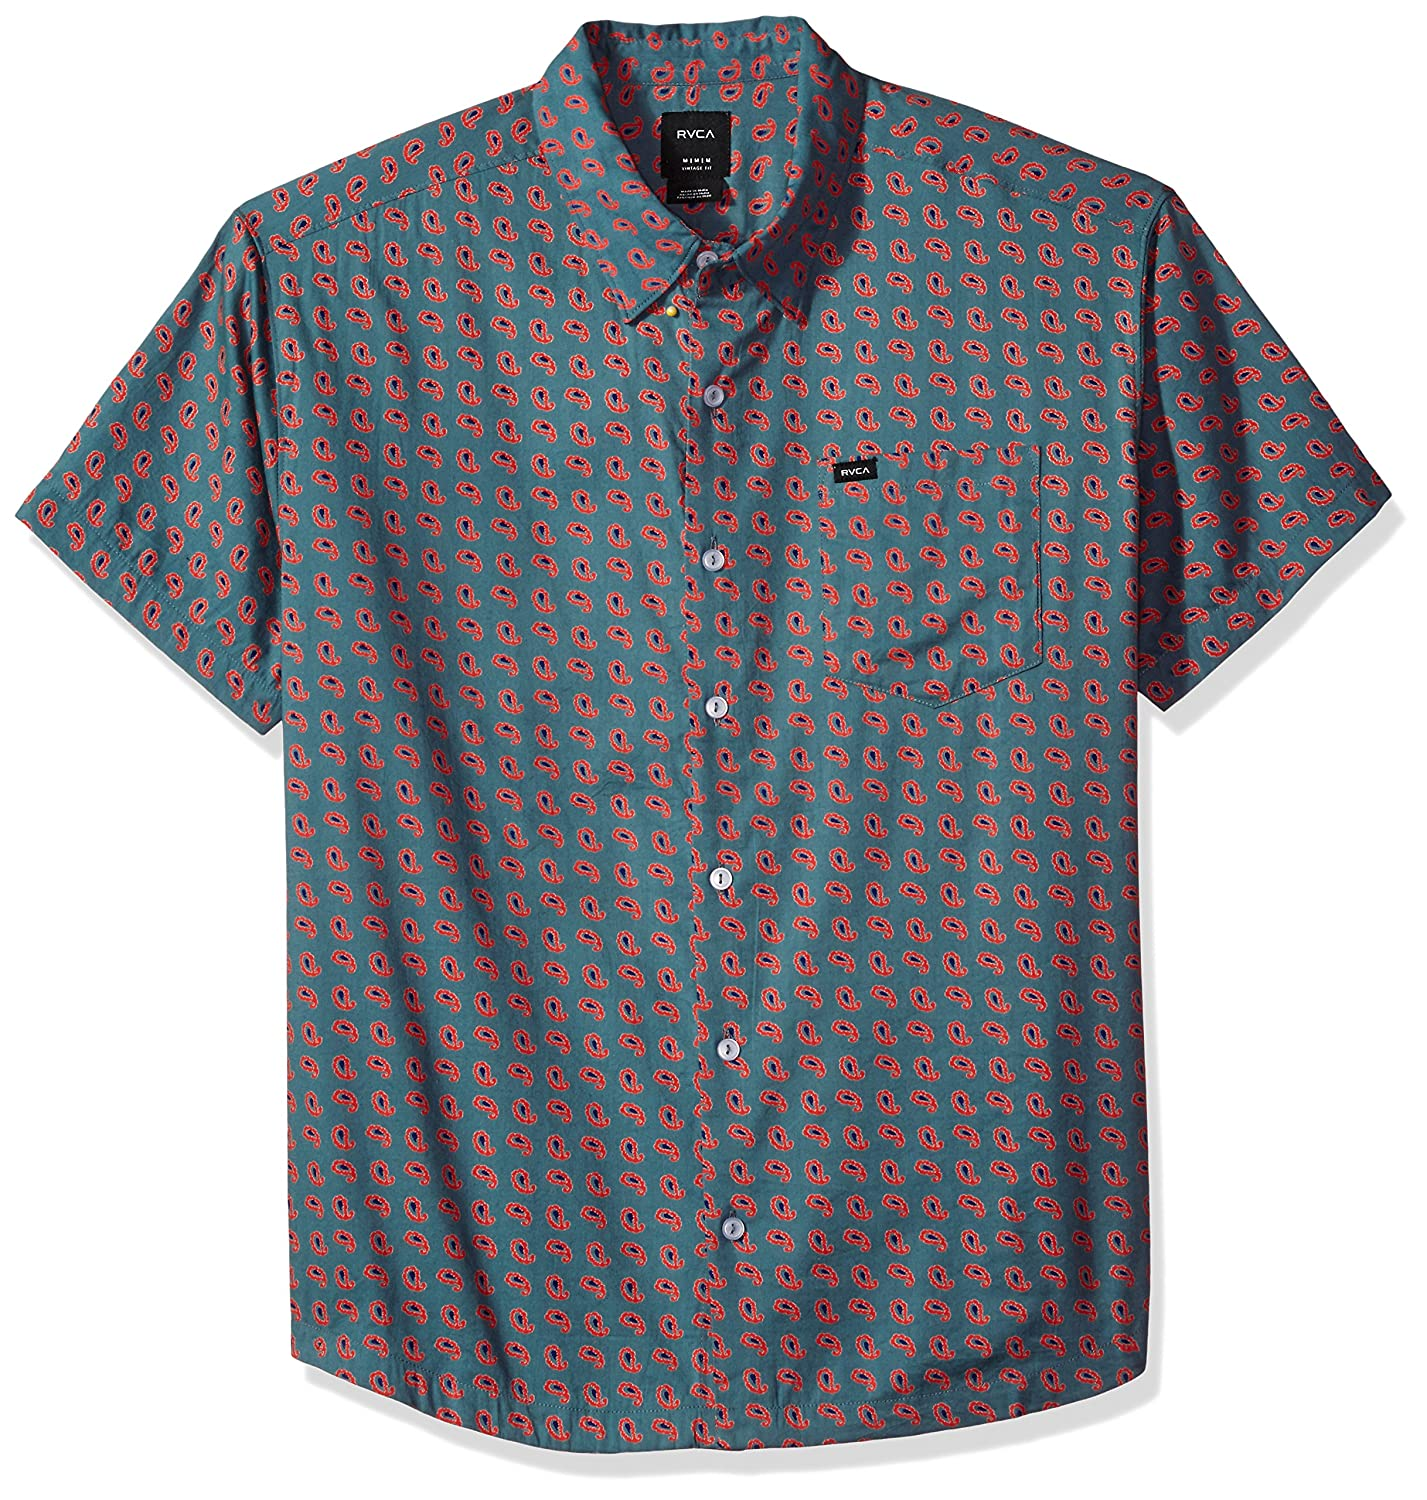 fe004a4d8bc Amazon.com  RVCA Men s Simon Short Sleeve Shirt  Clothing